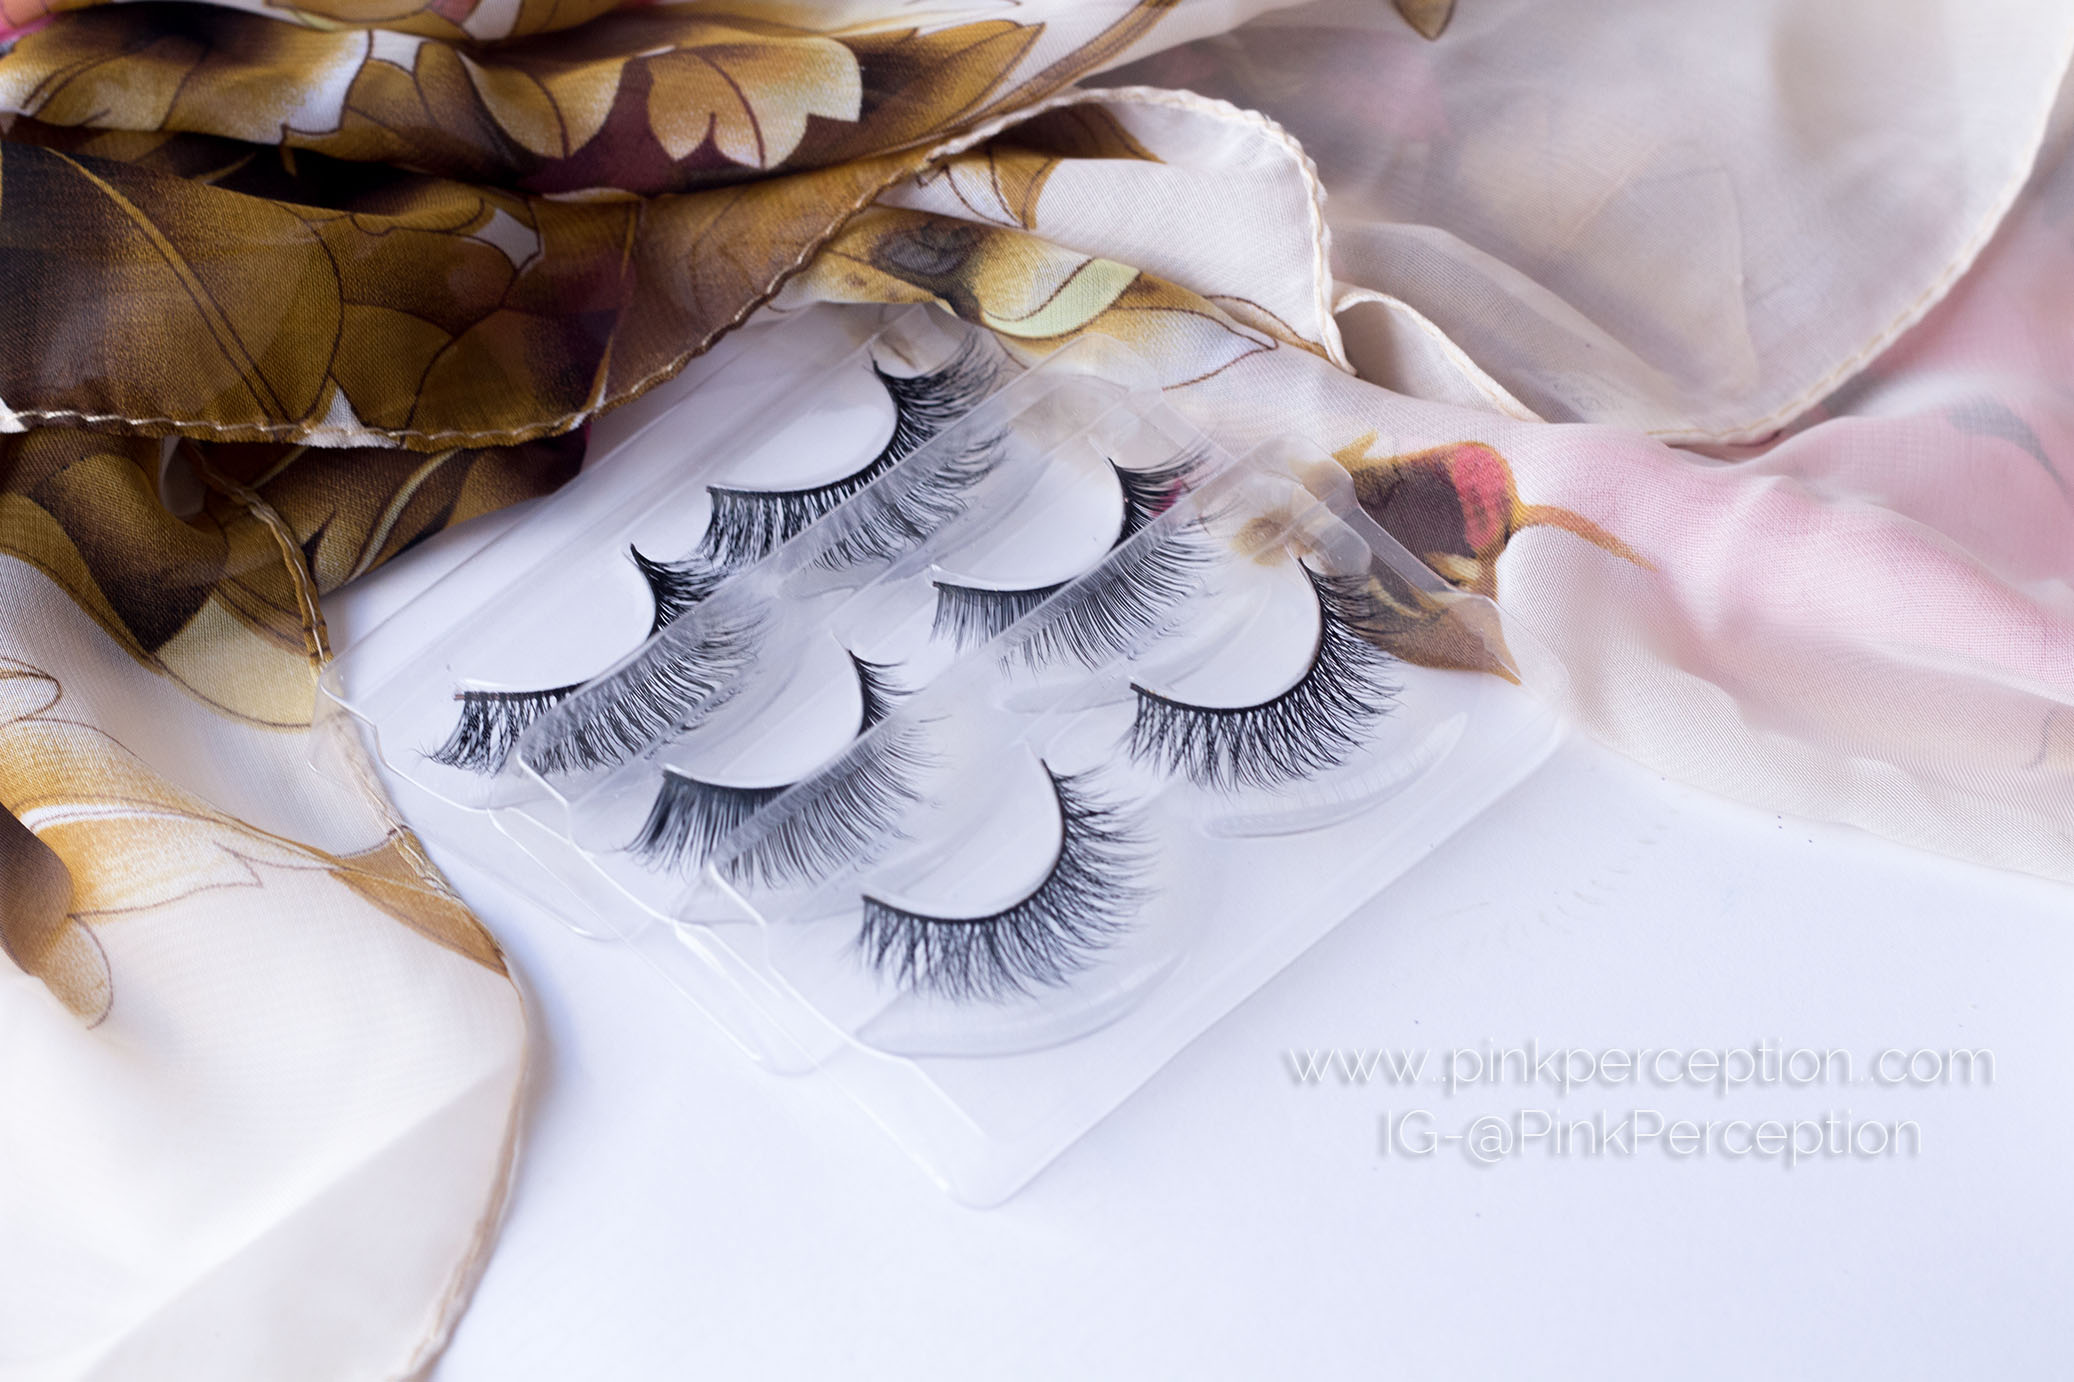 lovelove lashes, pinkperception mink lashes